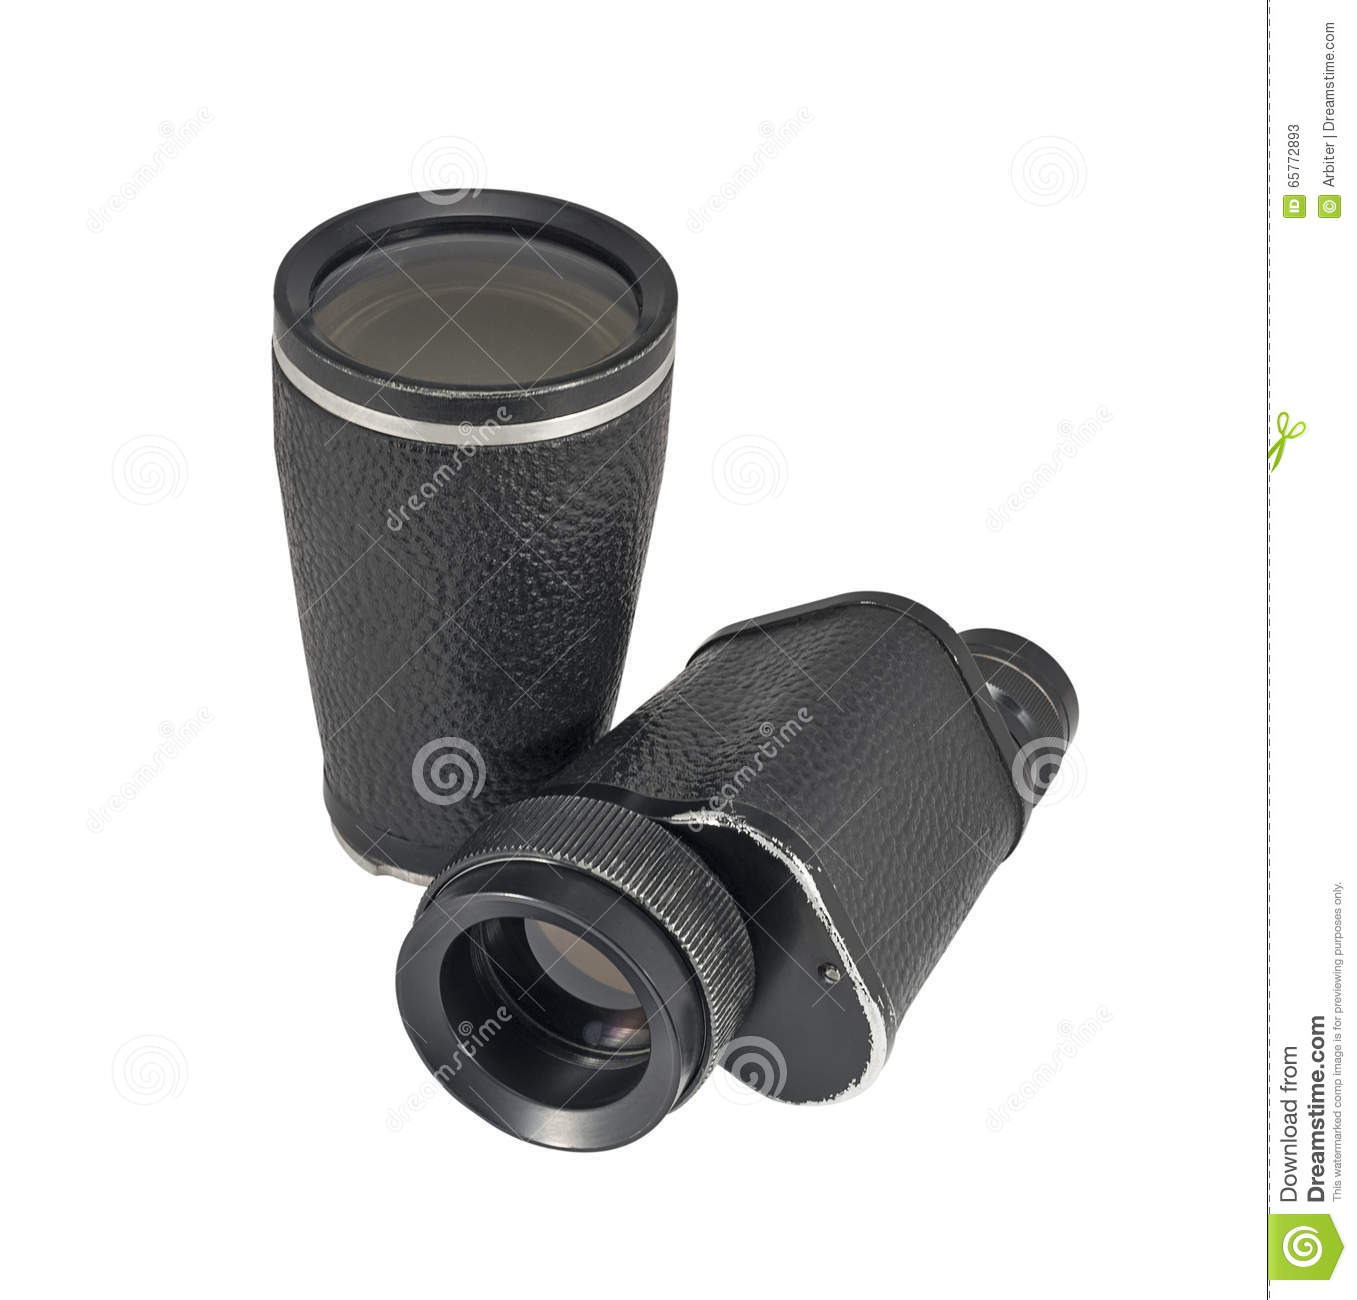 Old monocular with additional lens